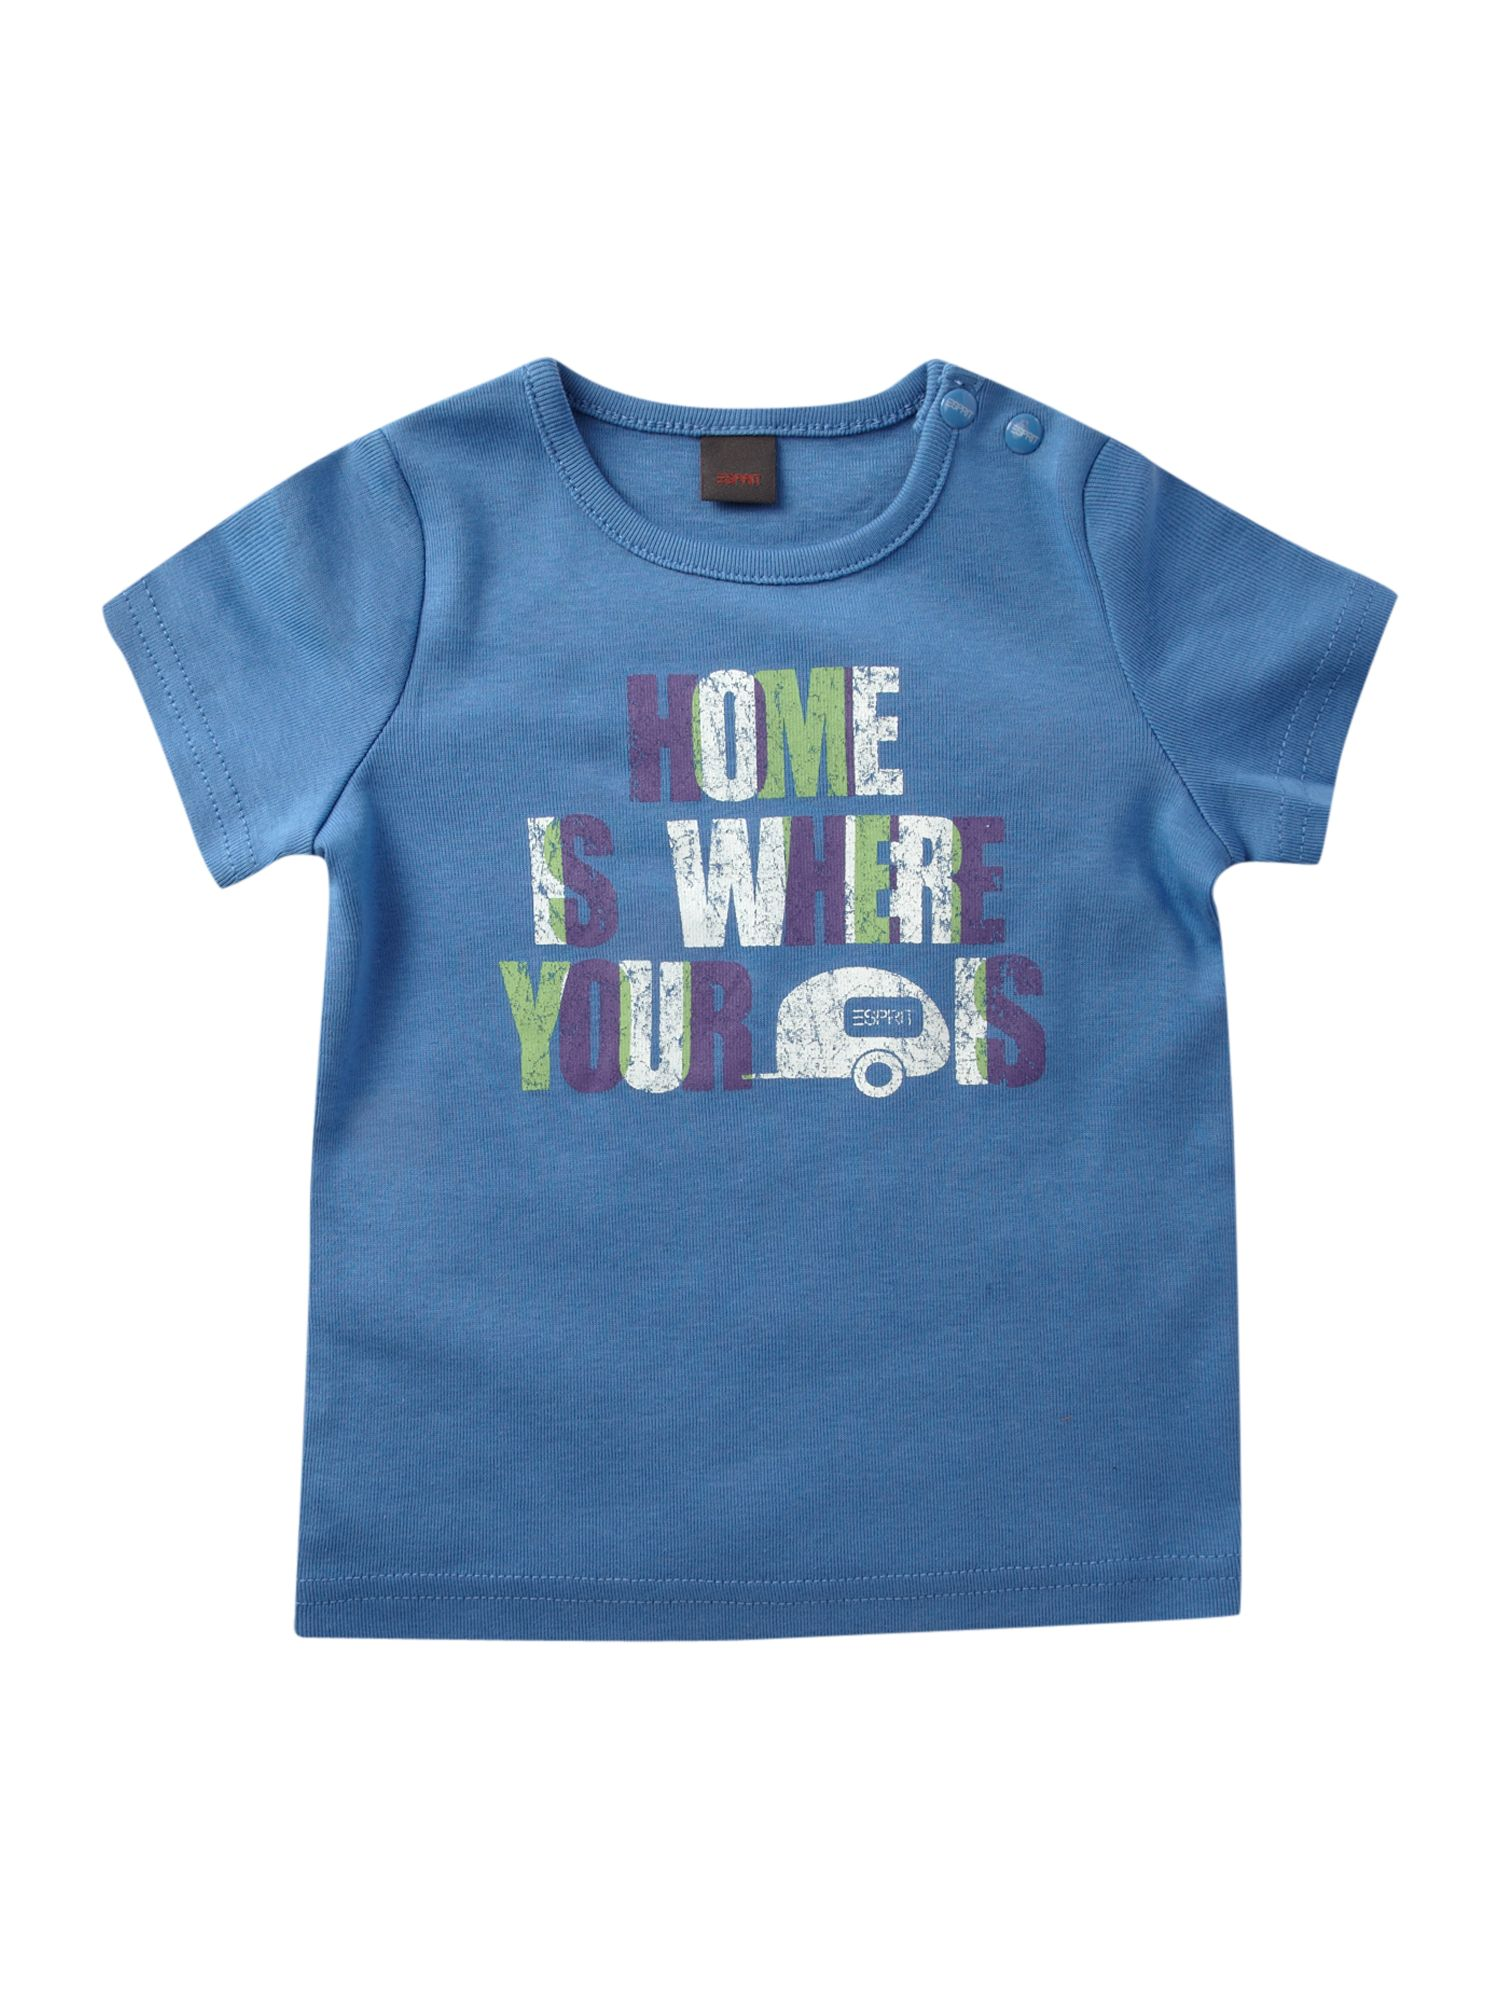 Esprit Short-sleeved home text print t-shirt, product image